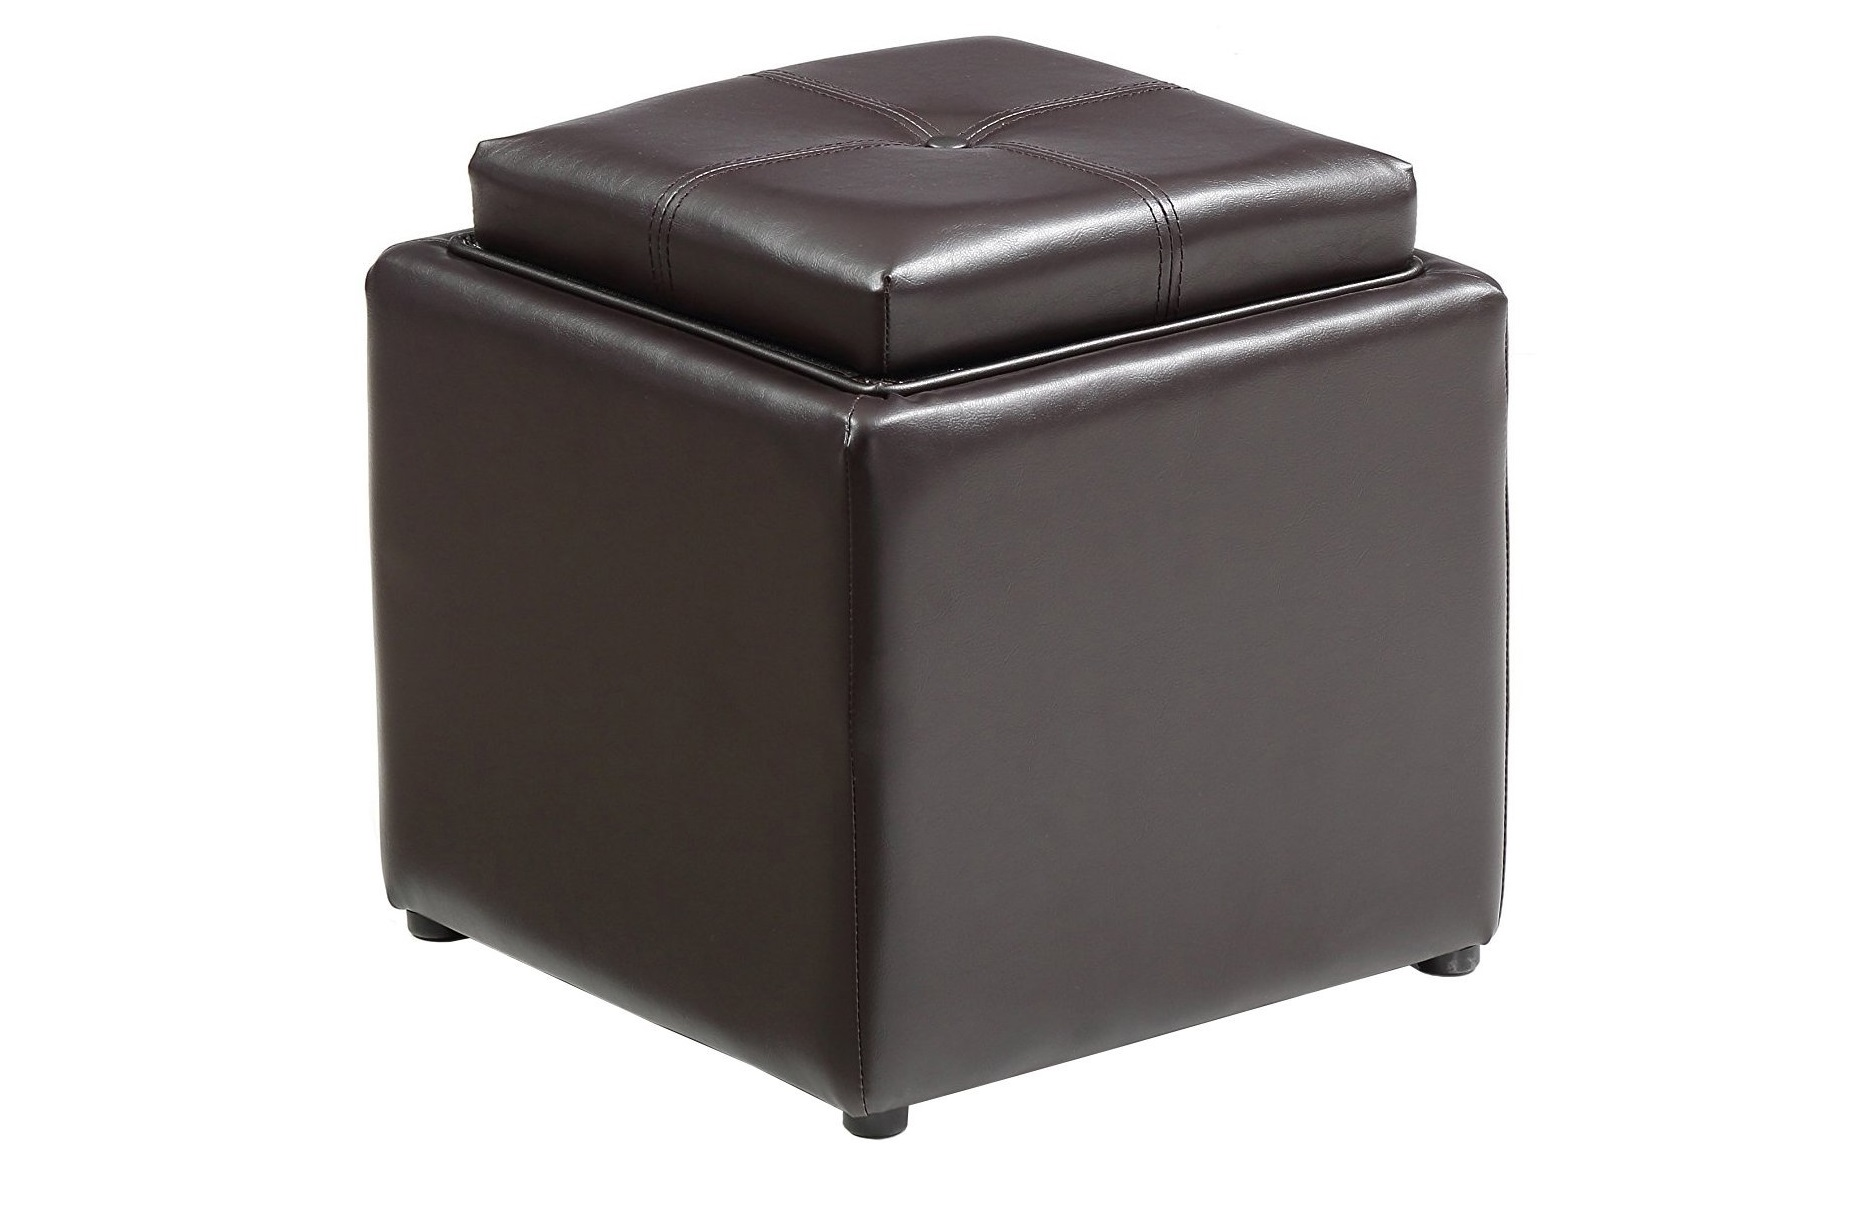 Top 10 Best Single Tray Ottomans in 2019